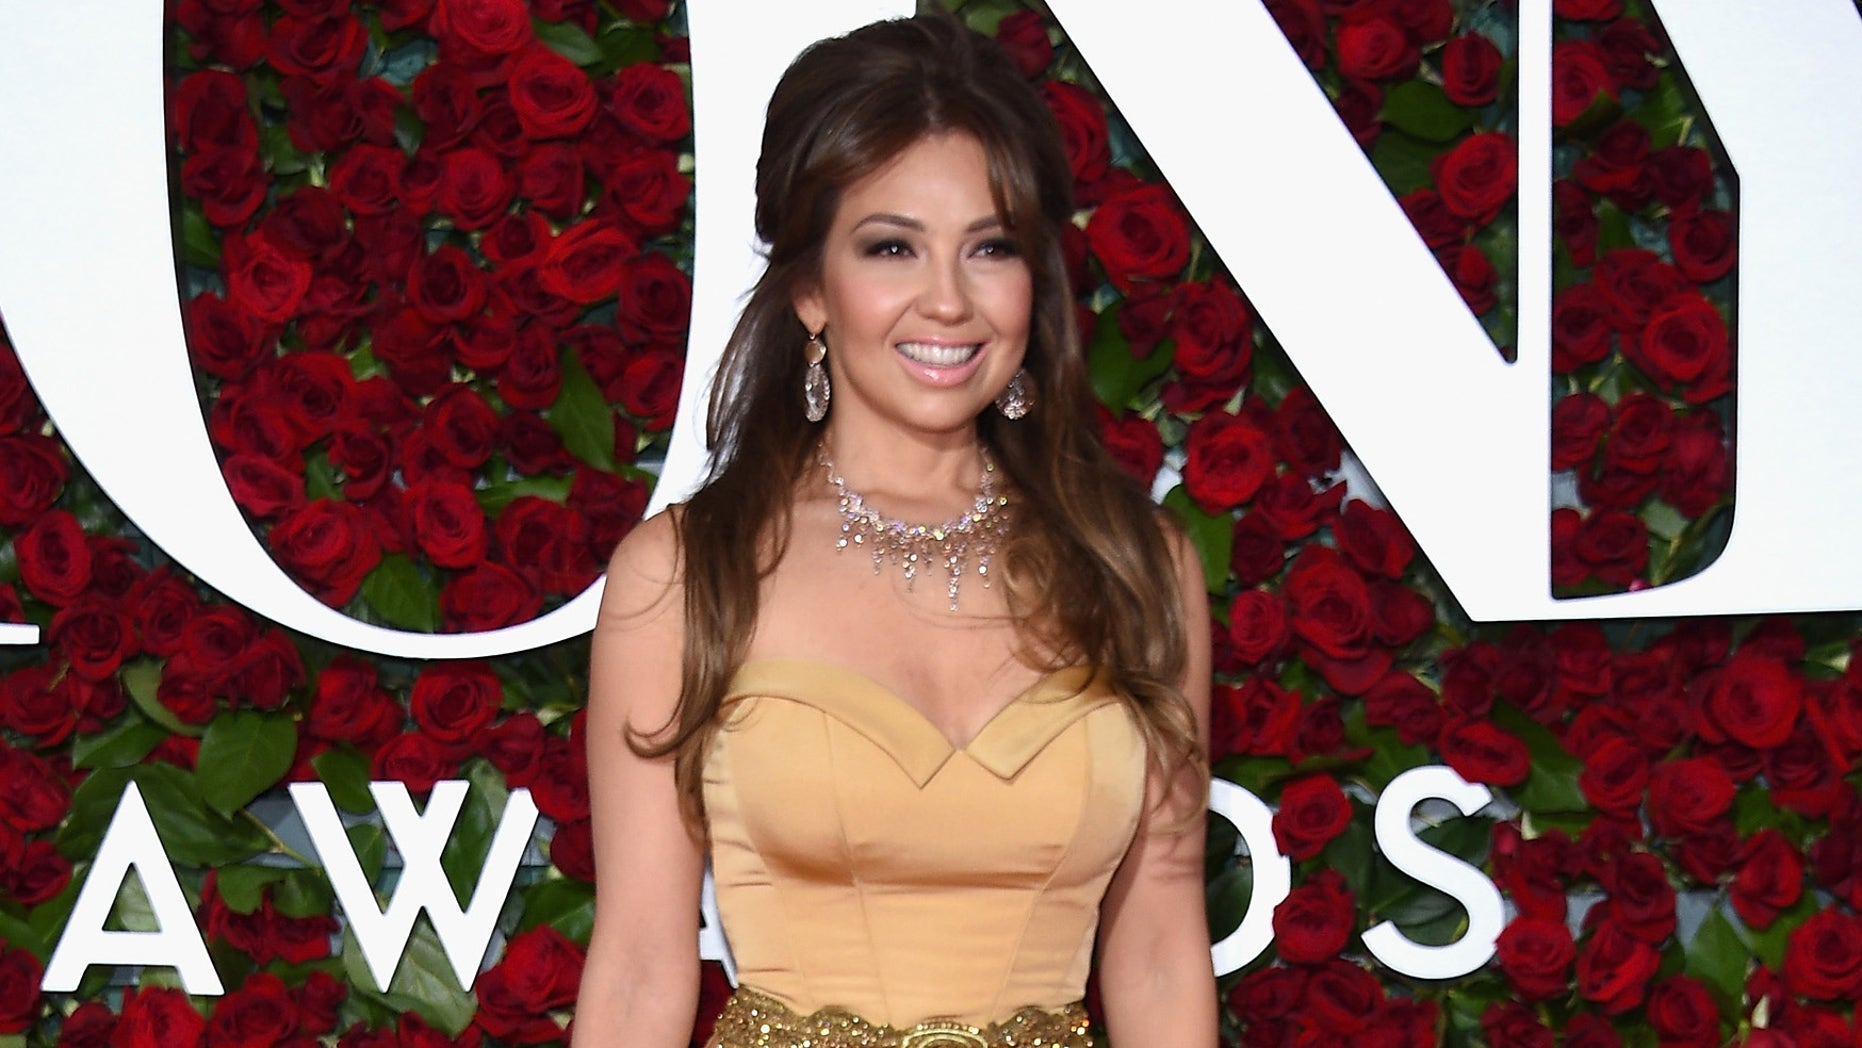 NEW YORK, NY - JUNE 12:  Recording artist Thalia attends the 70th Annual Tony Awards at The Beacon Theatre on June 12, 2016 in New York City.  (Photo by Dimitrios Kambouris/Getty Images for Tony Awards Productions)